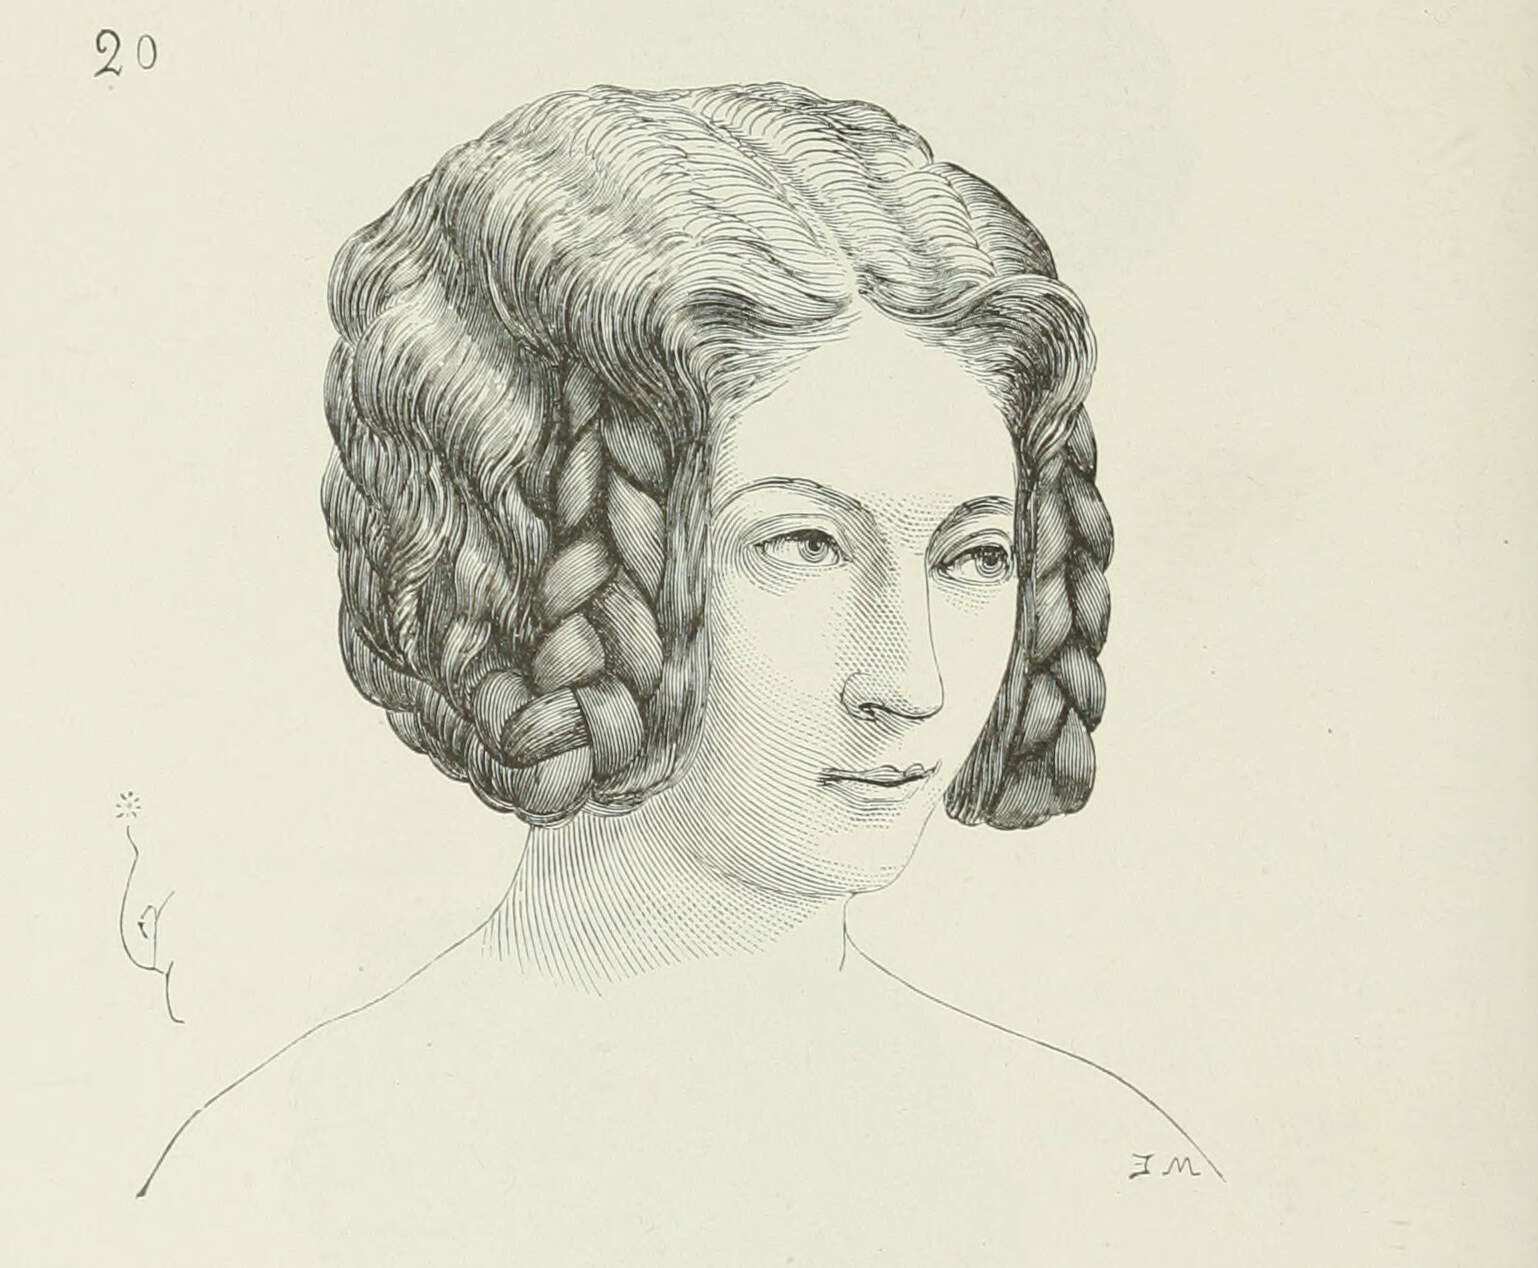 New Fourteenth Century Hairstyle – Old Book Illustrations Ideas With Pictures